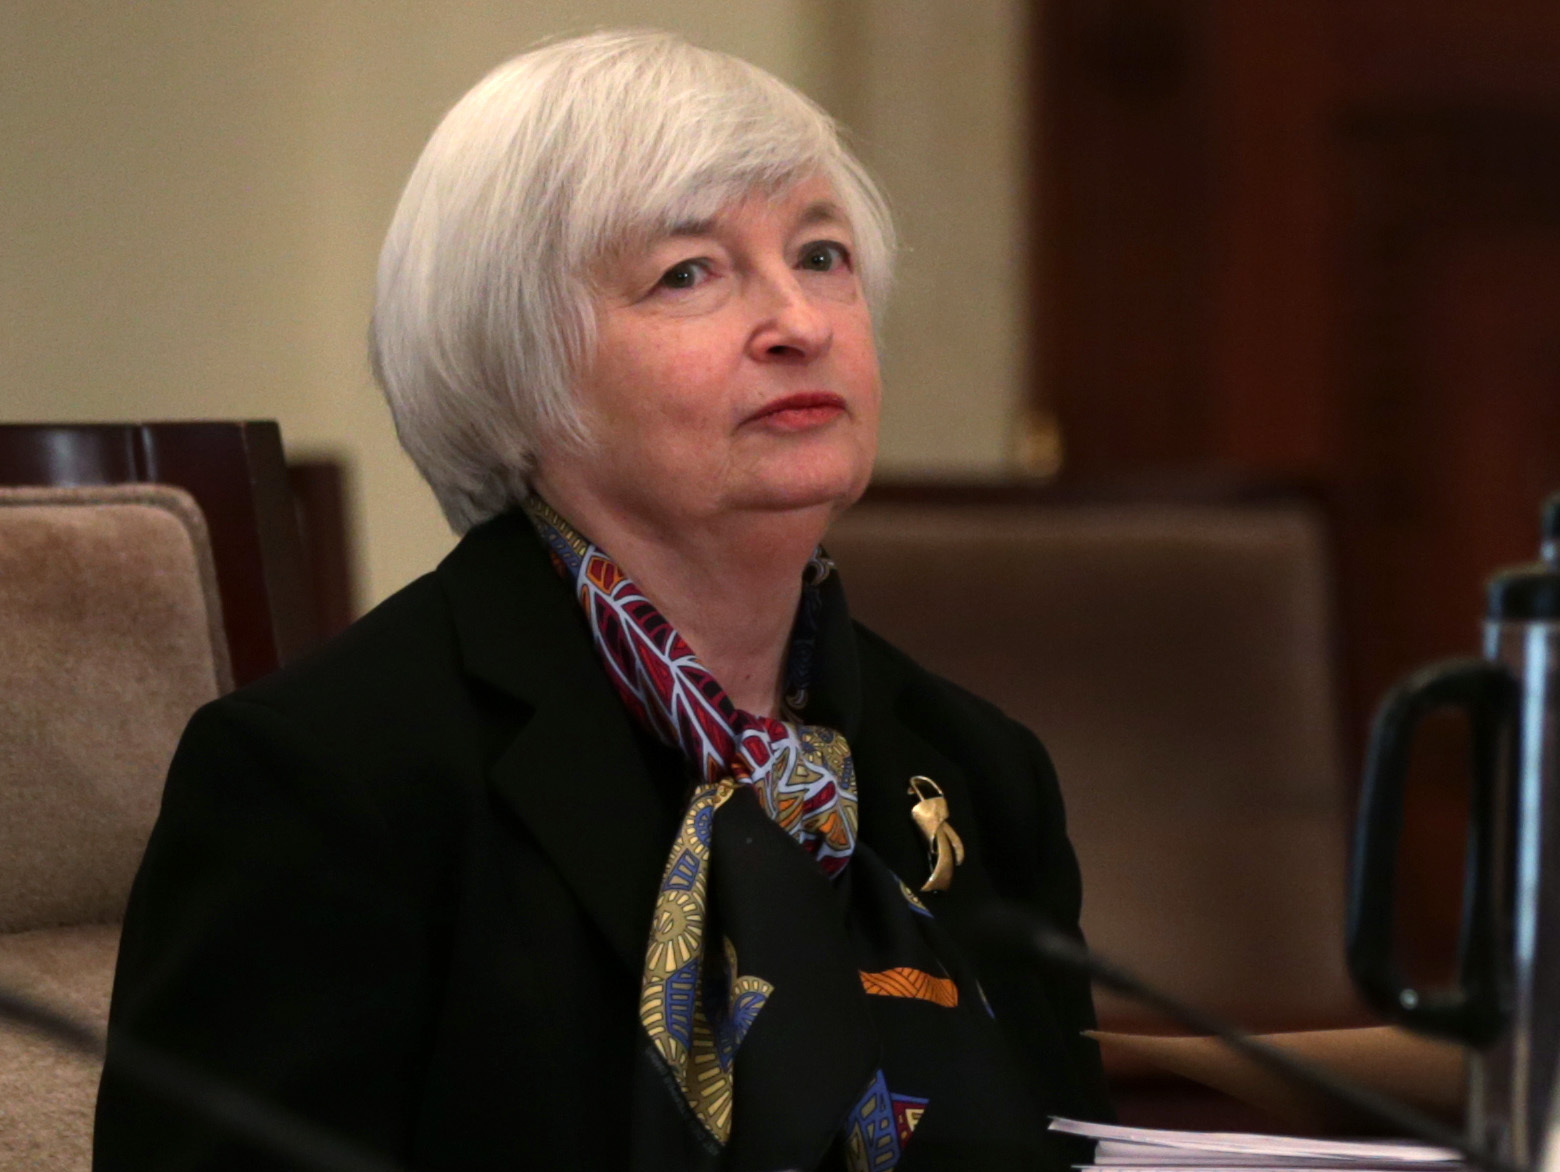 Yellen Nomination To Fed Clears Hurdle; Confirmation Likely